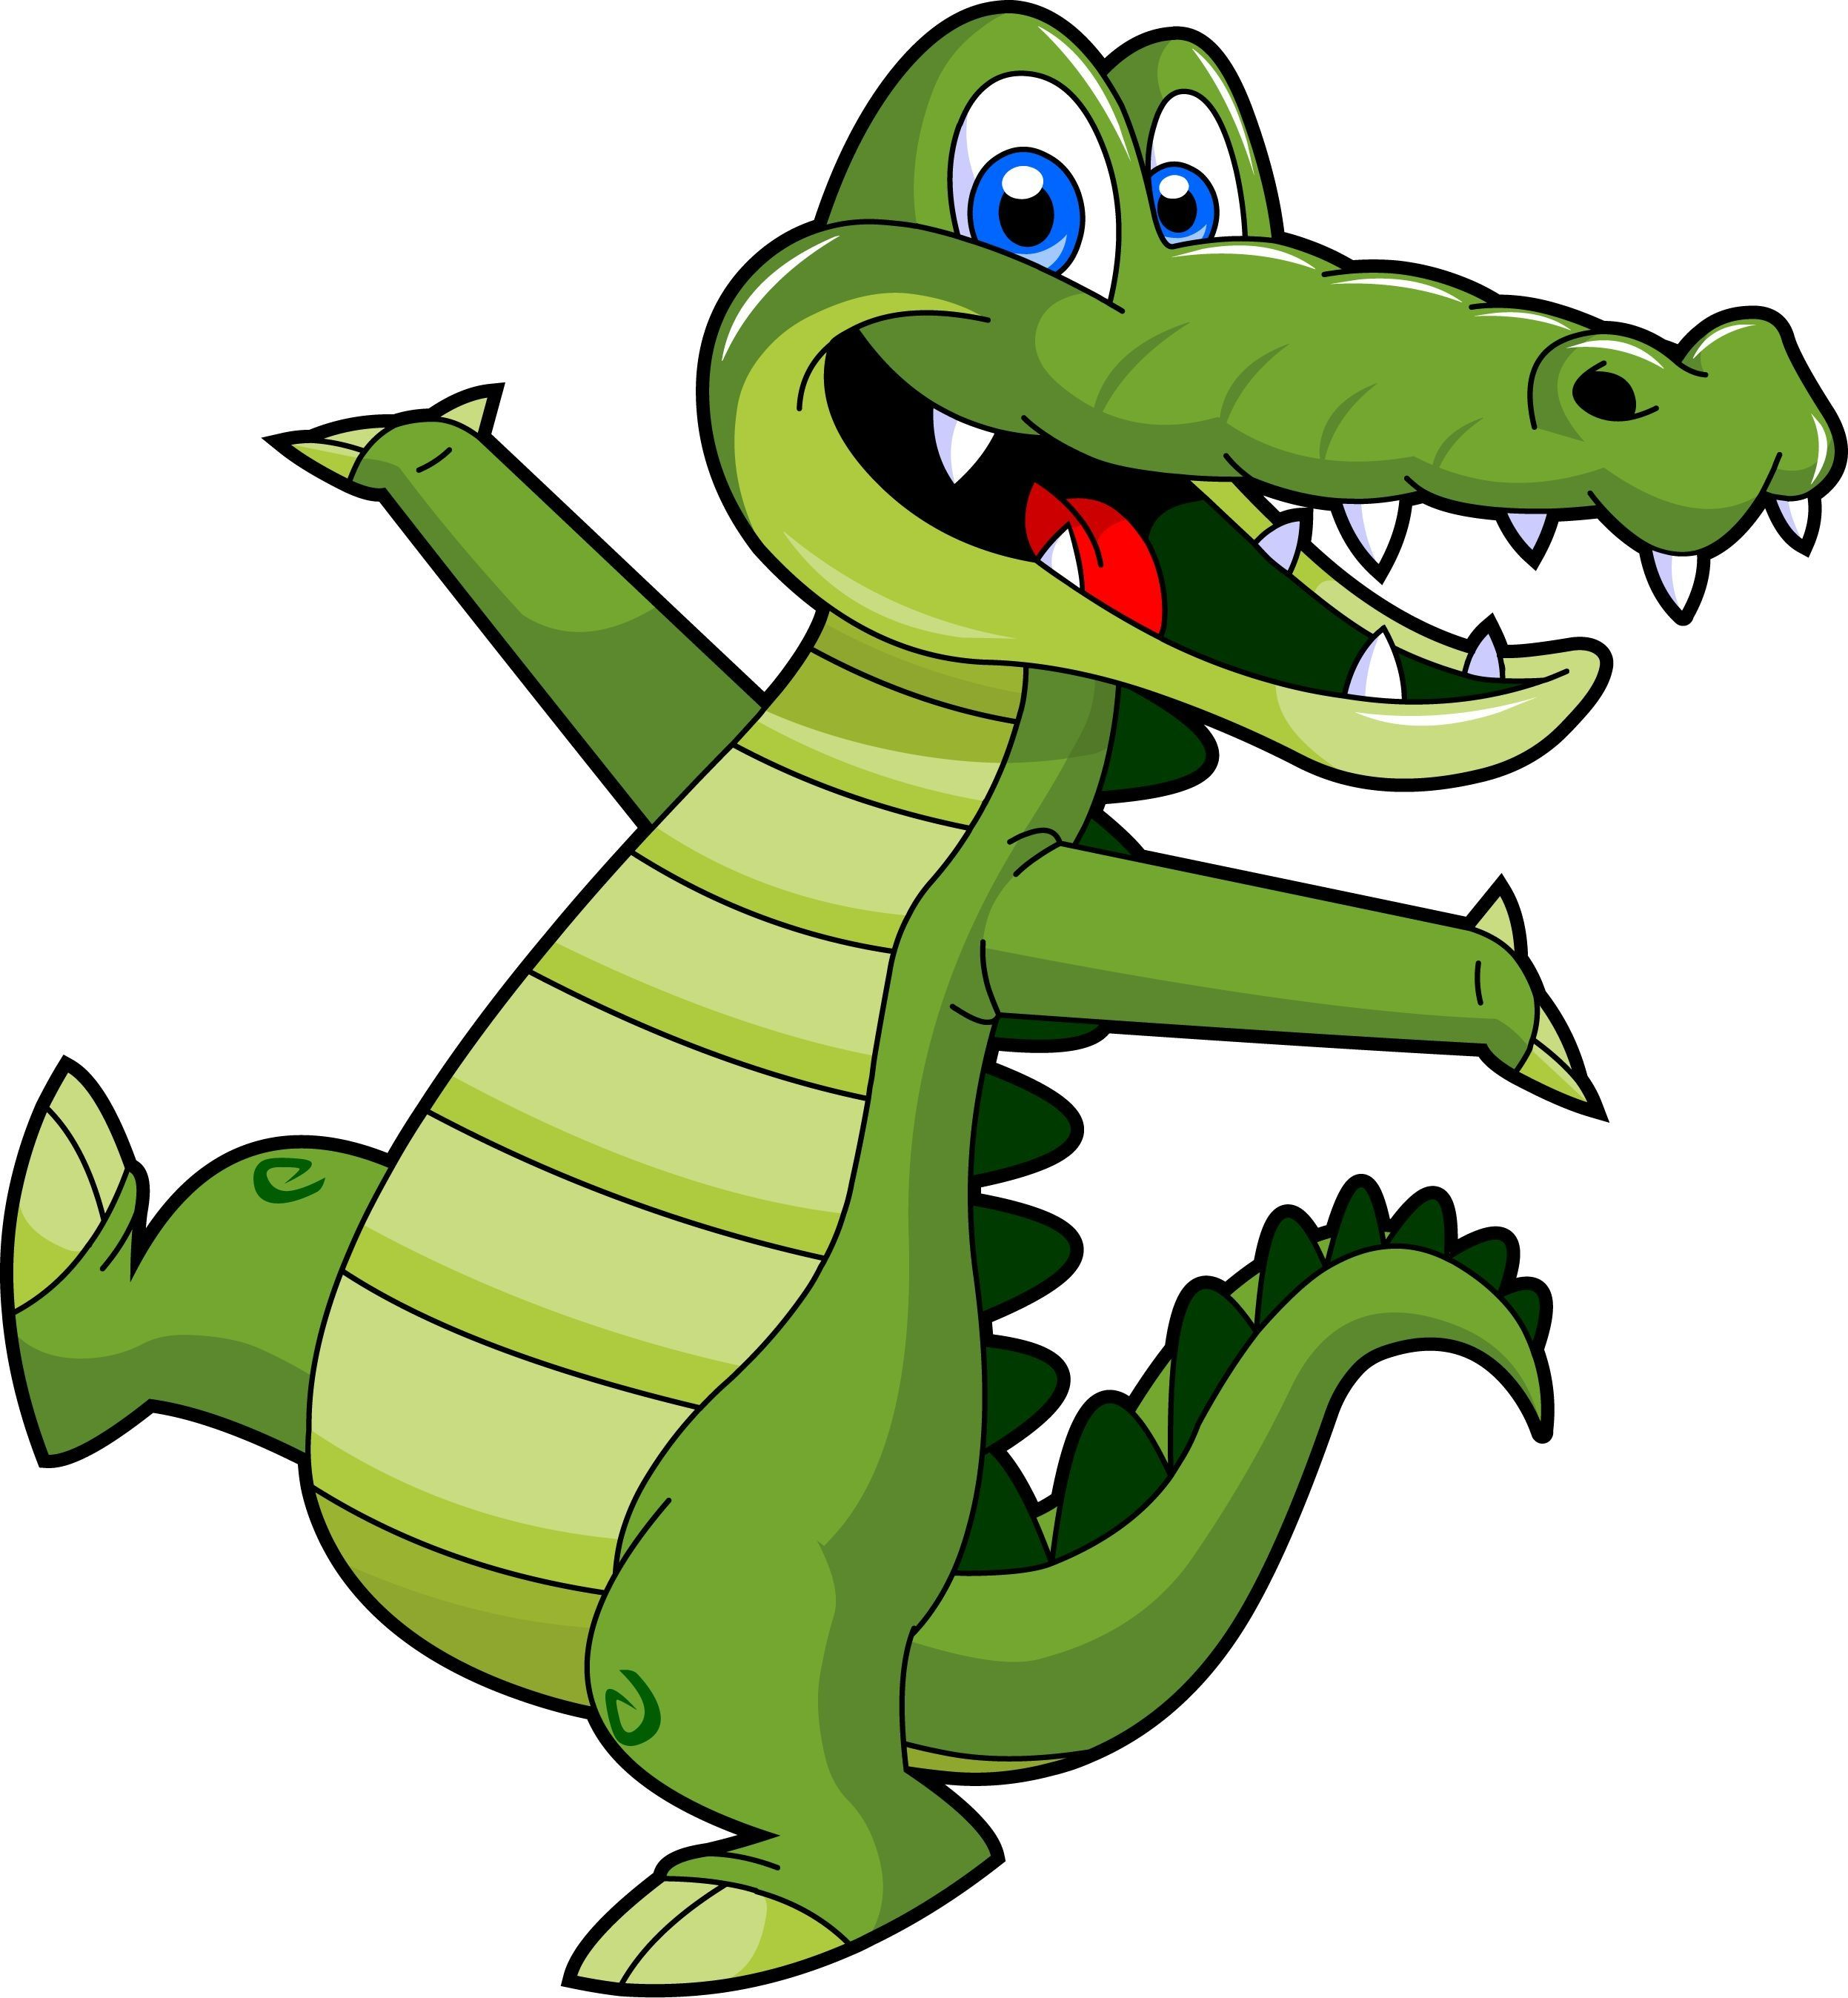 2494x2696 Crocodile Clip Art Alligator Clip Art.jpg Alligators